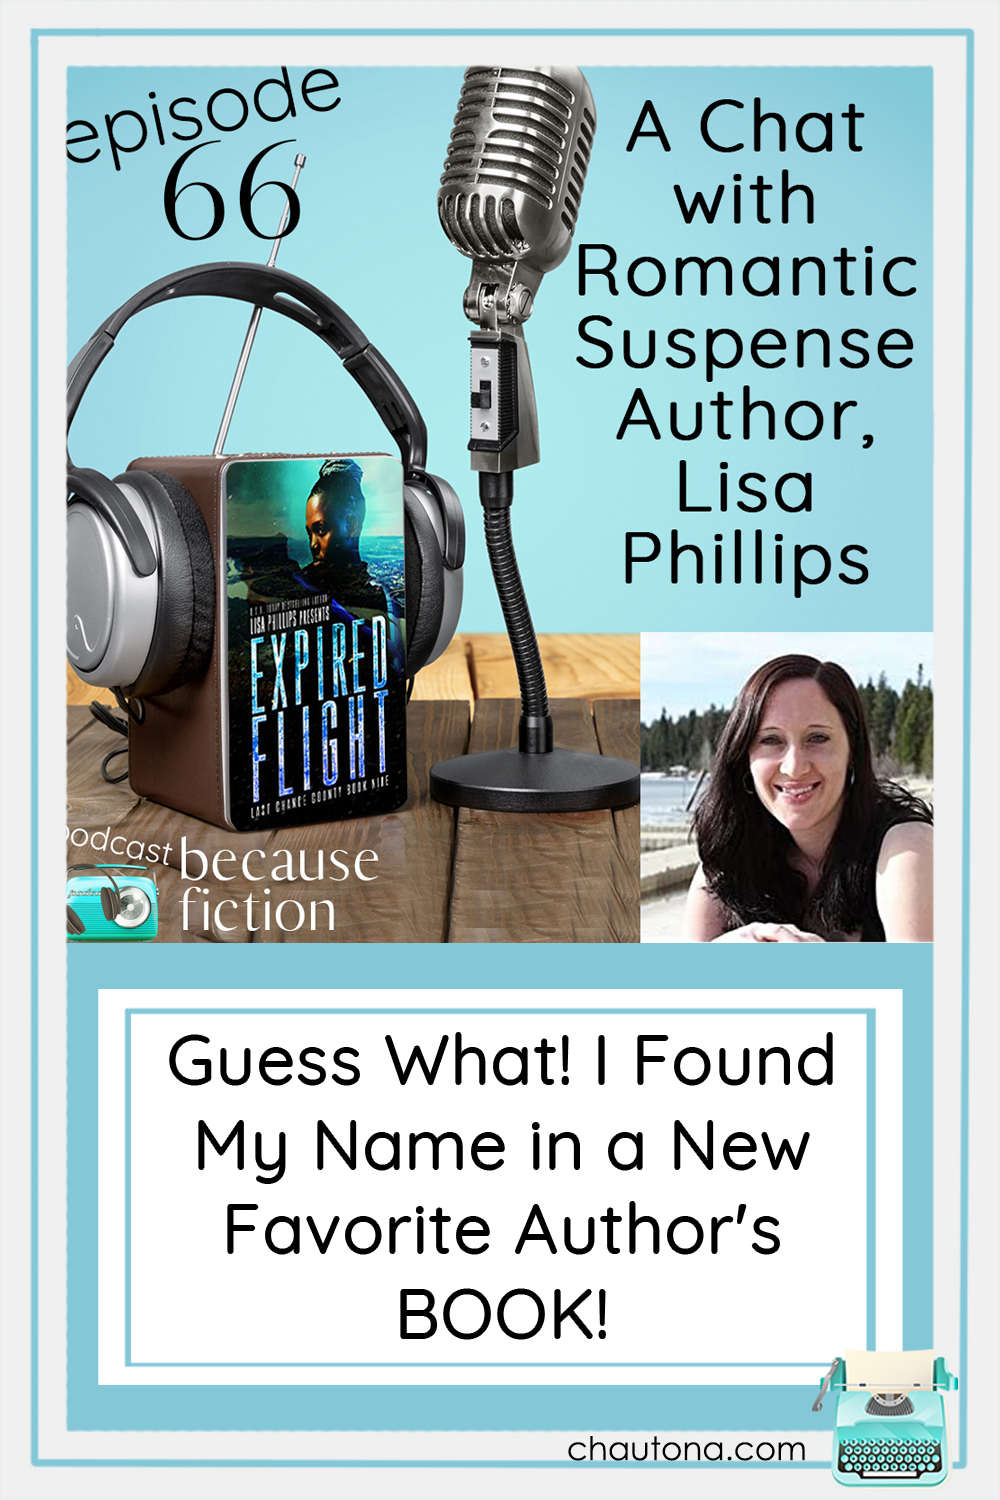 Lisa Phillips has a new release & another one coming at the end of June. Last Chance County series will wrap up then & spin off a new one! via @chautonahavig